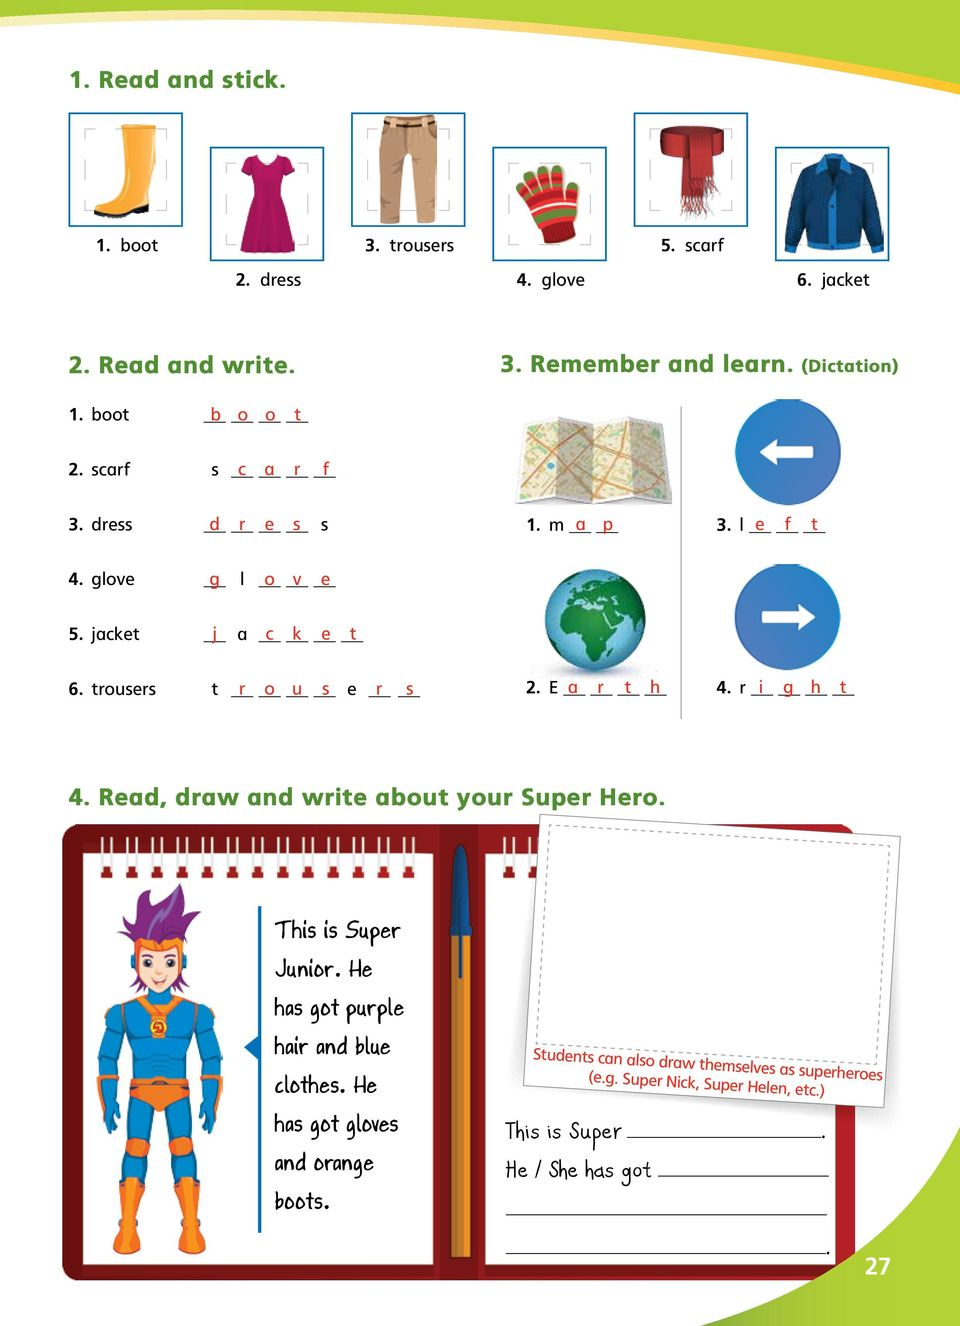 trousers t _ r _ o _ u _ s e _ r _ s 2. E _ a _ r _ t _ h 4. r _ i _ g _ h _ t 4. Read, draw and write about your Super Hero. This is Super Junior.